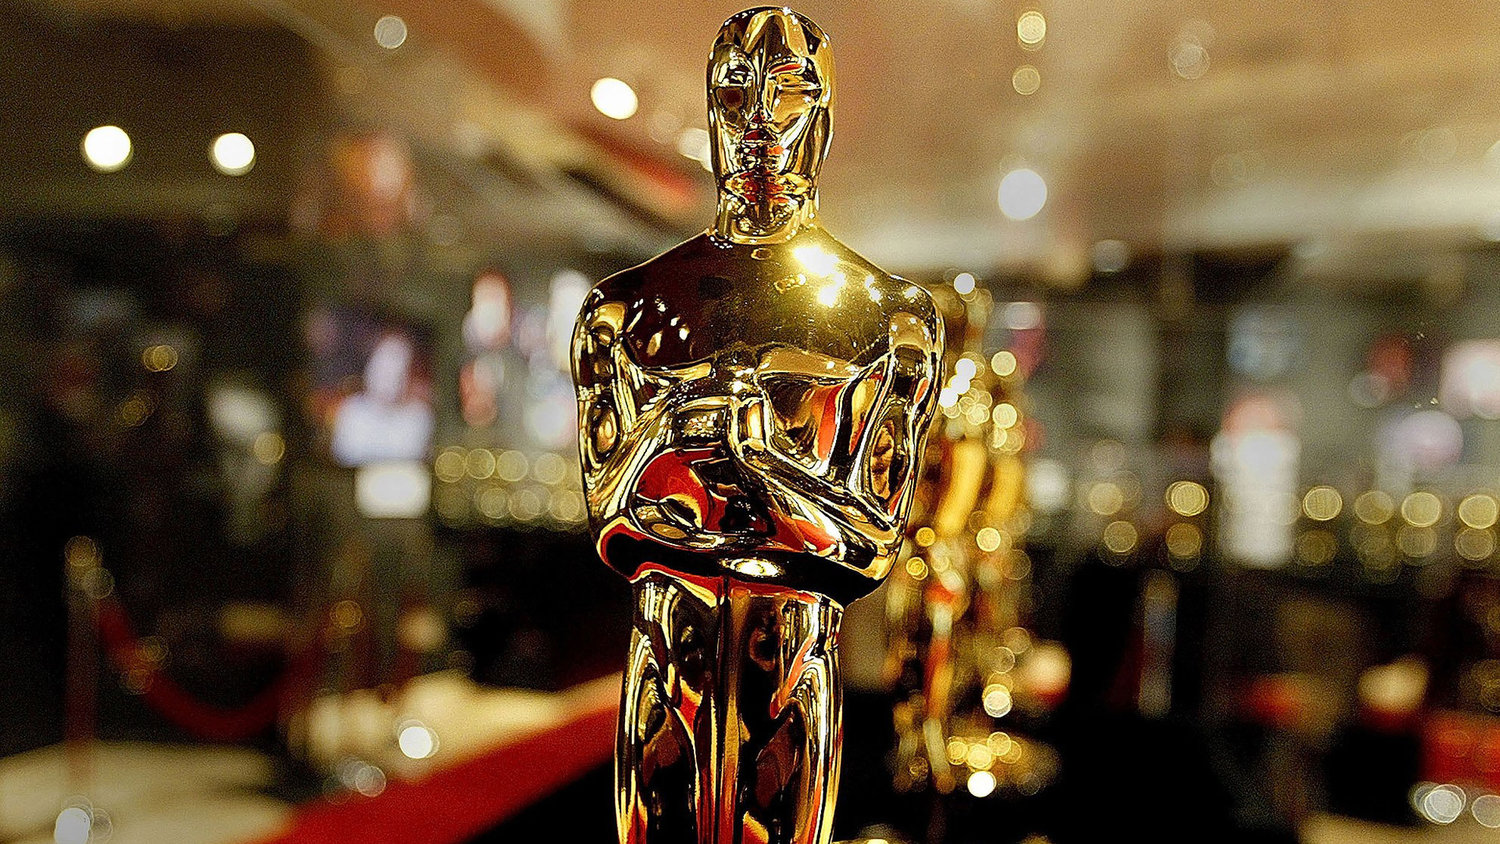 Oscars Best Hair And Makeup Look At The Red Carpet Glamour additionally Oscar Predictions Best Actor Redmayne 2016 moreover Making The Case For Modern Family furthermore Oscars Best Hair And Makeup Look At The Red Carpet Glamour as well La Voz Kids Season 3 2015 Cast News Judges Natalia. on oscar predictions 2017 who will win